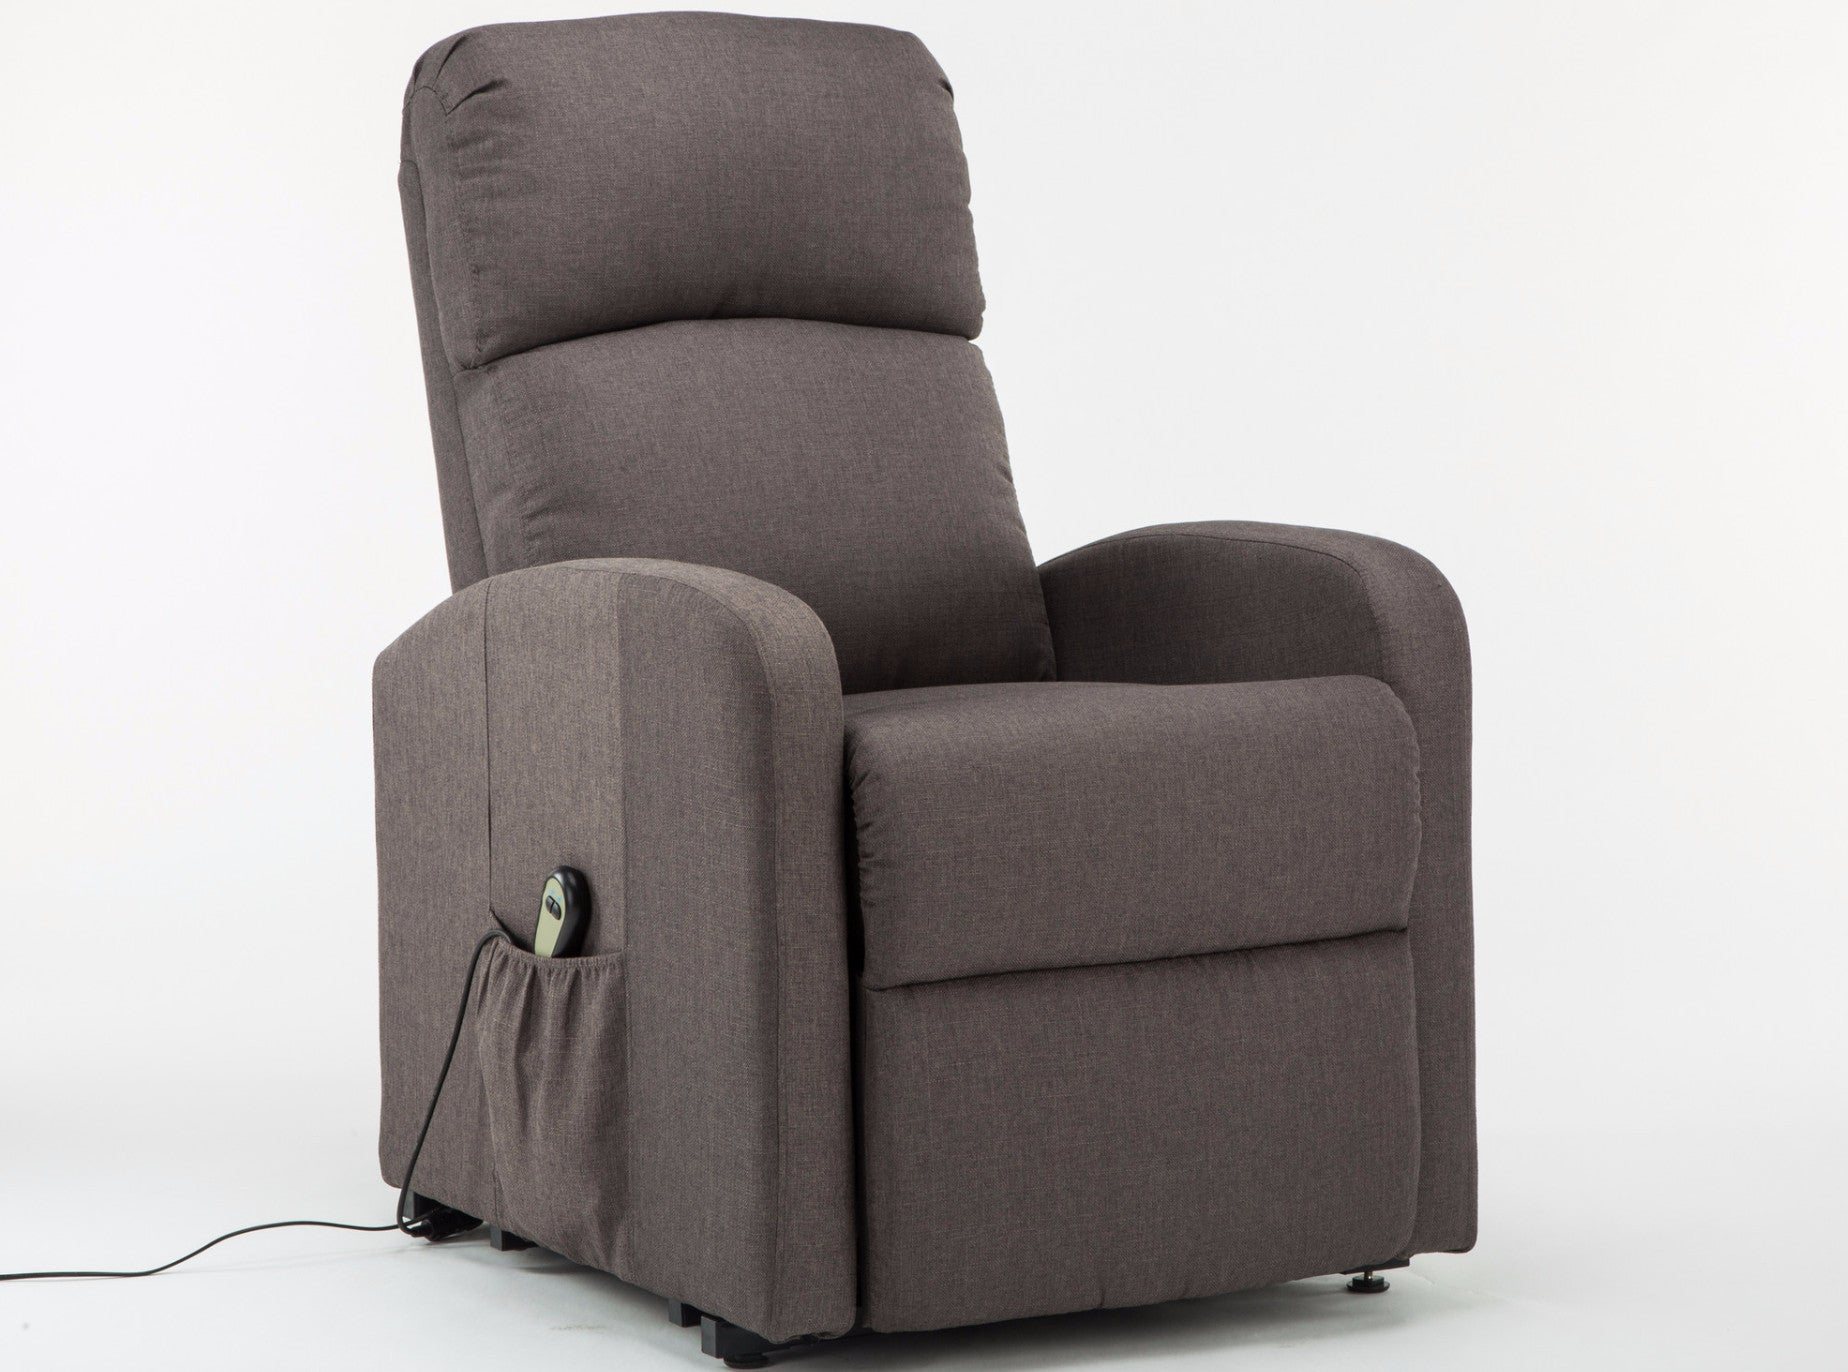 Lift Power Lift Recliner Fabric Chair & Lift Recliner Fabric Chair | Lift Power Lift Recliner Fabric Chair ... islam-shia.org